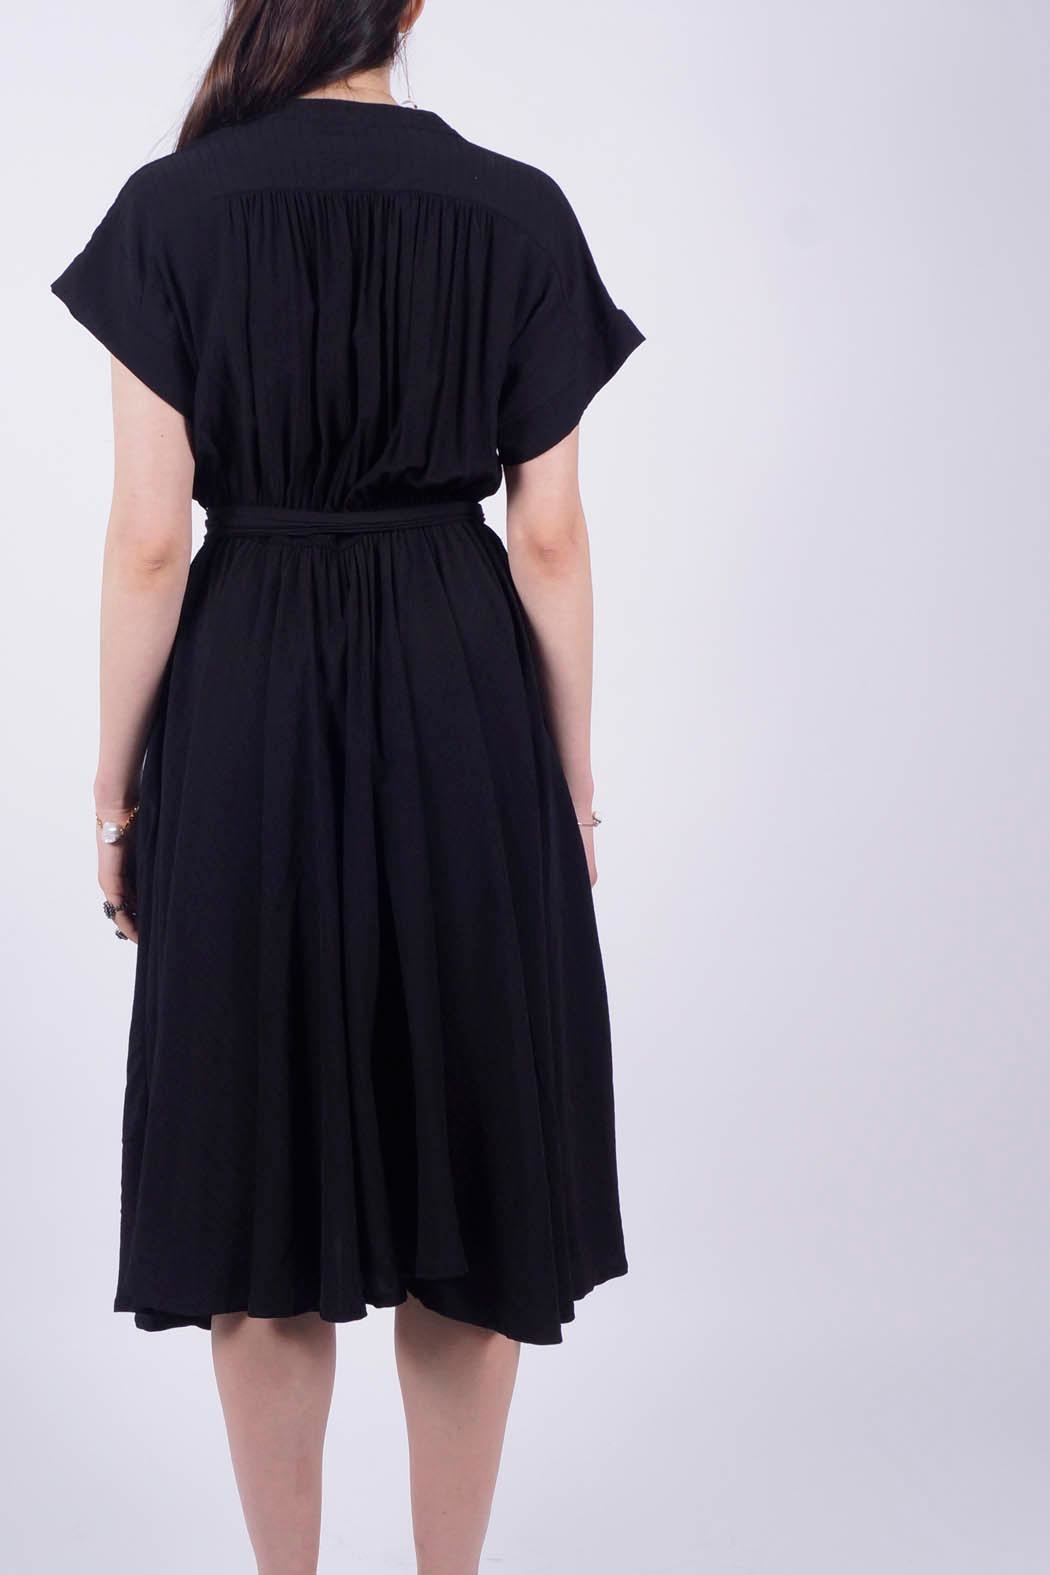 NU New York Black Shirt Dress - Front Full Image